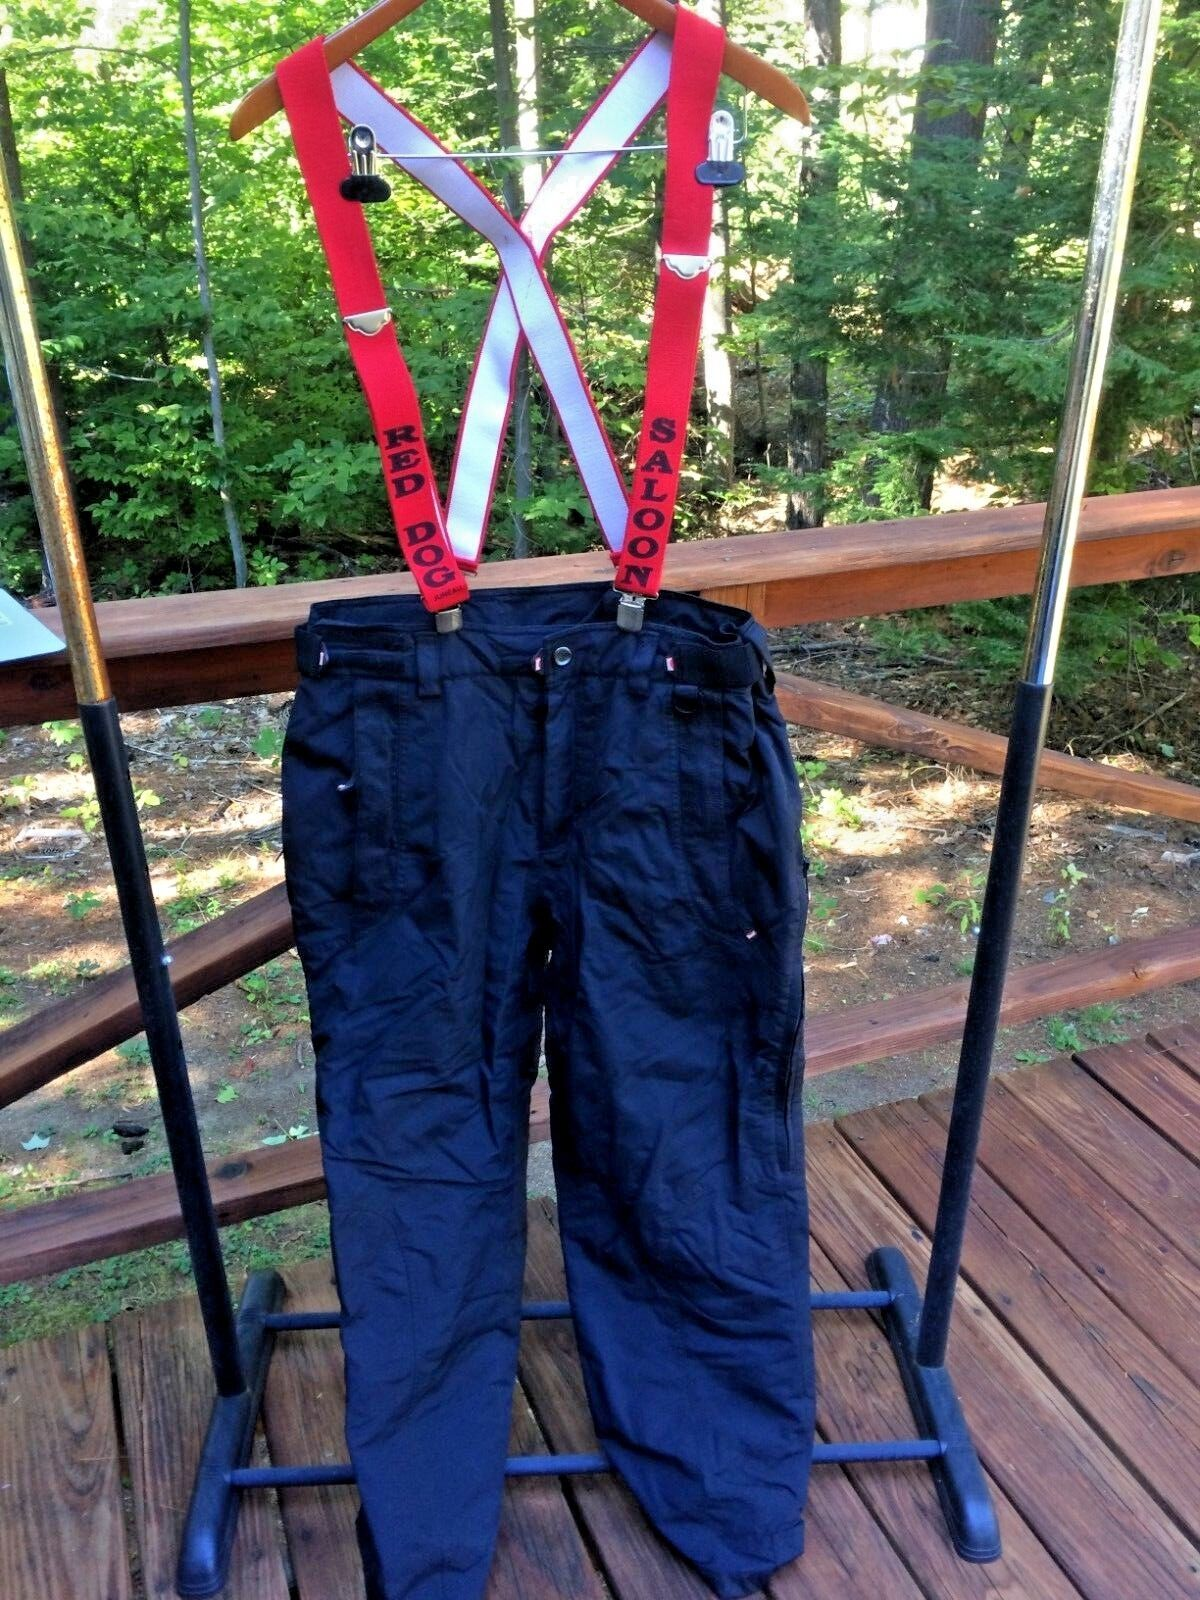 Marker Mens M Nylon Insulated Red Dog Saloon Suspenders Snow Snowboard Ski Pants